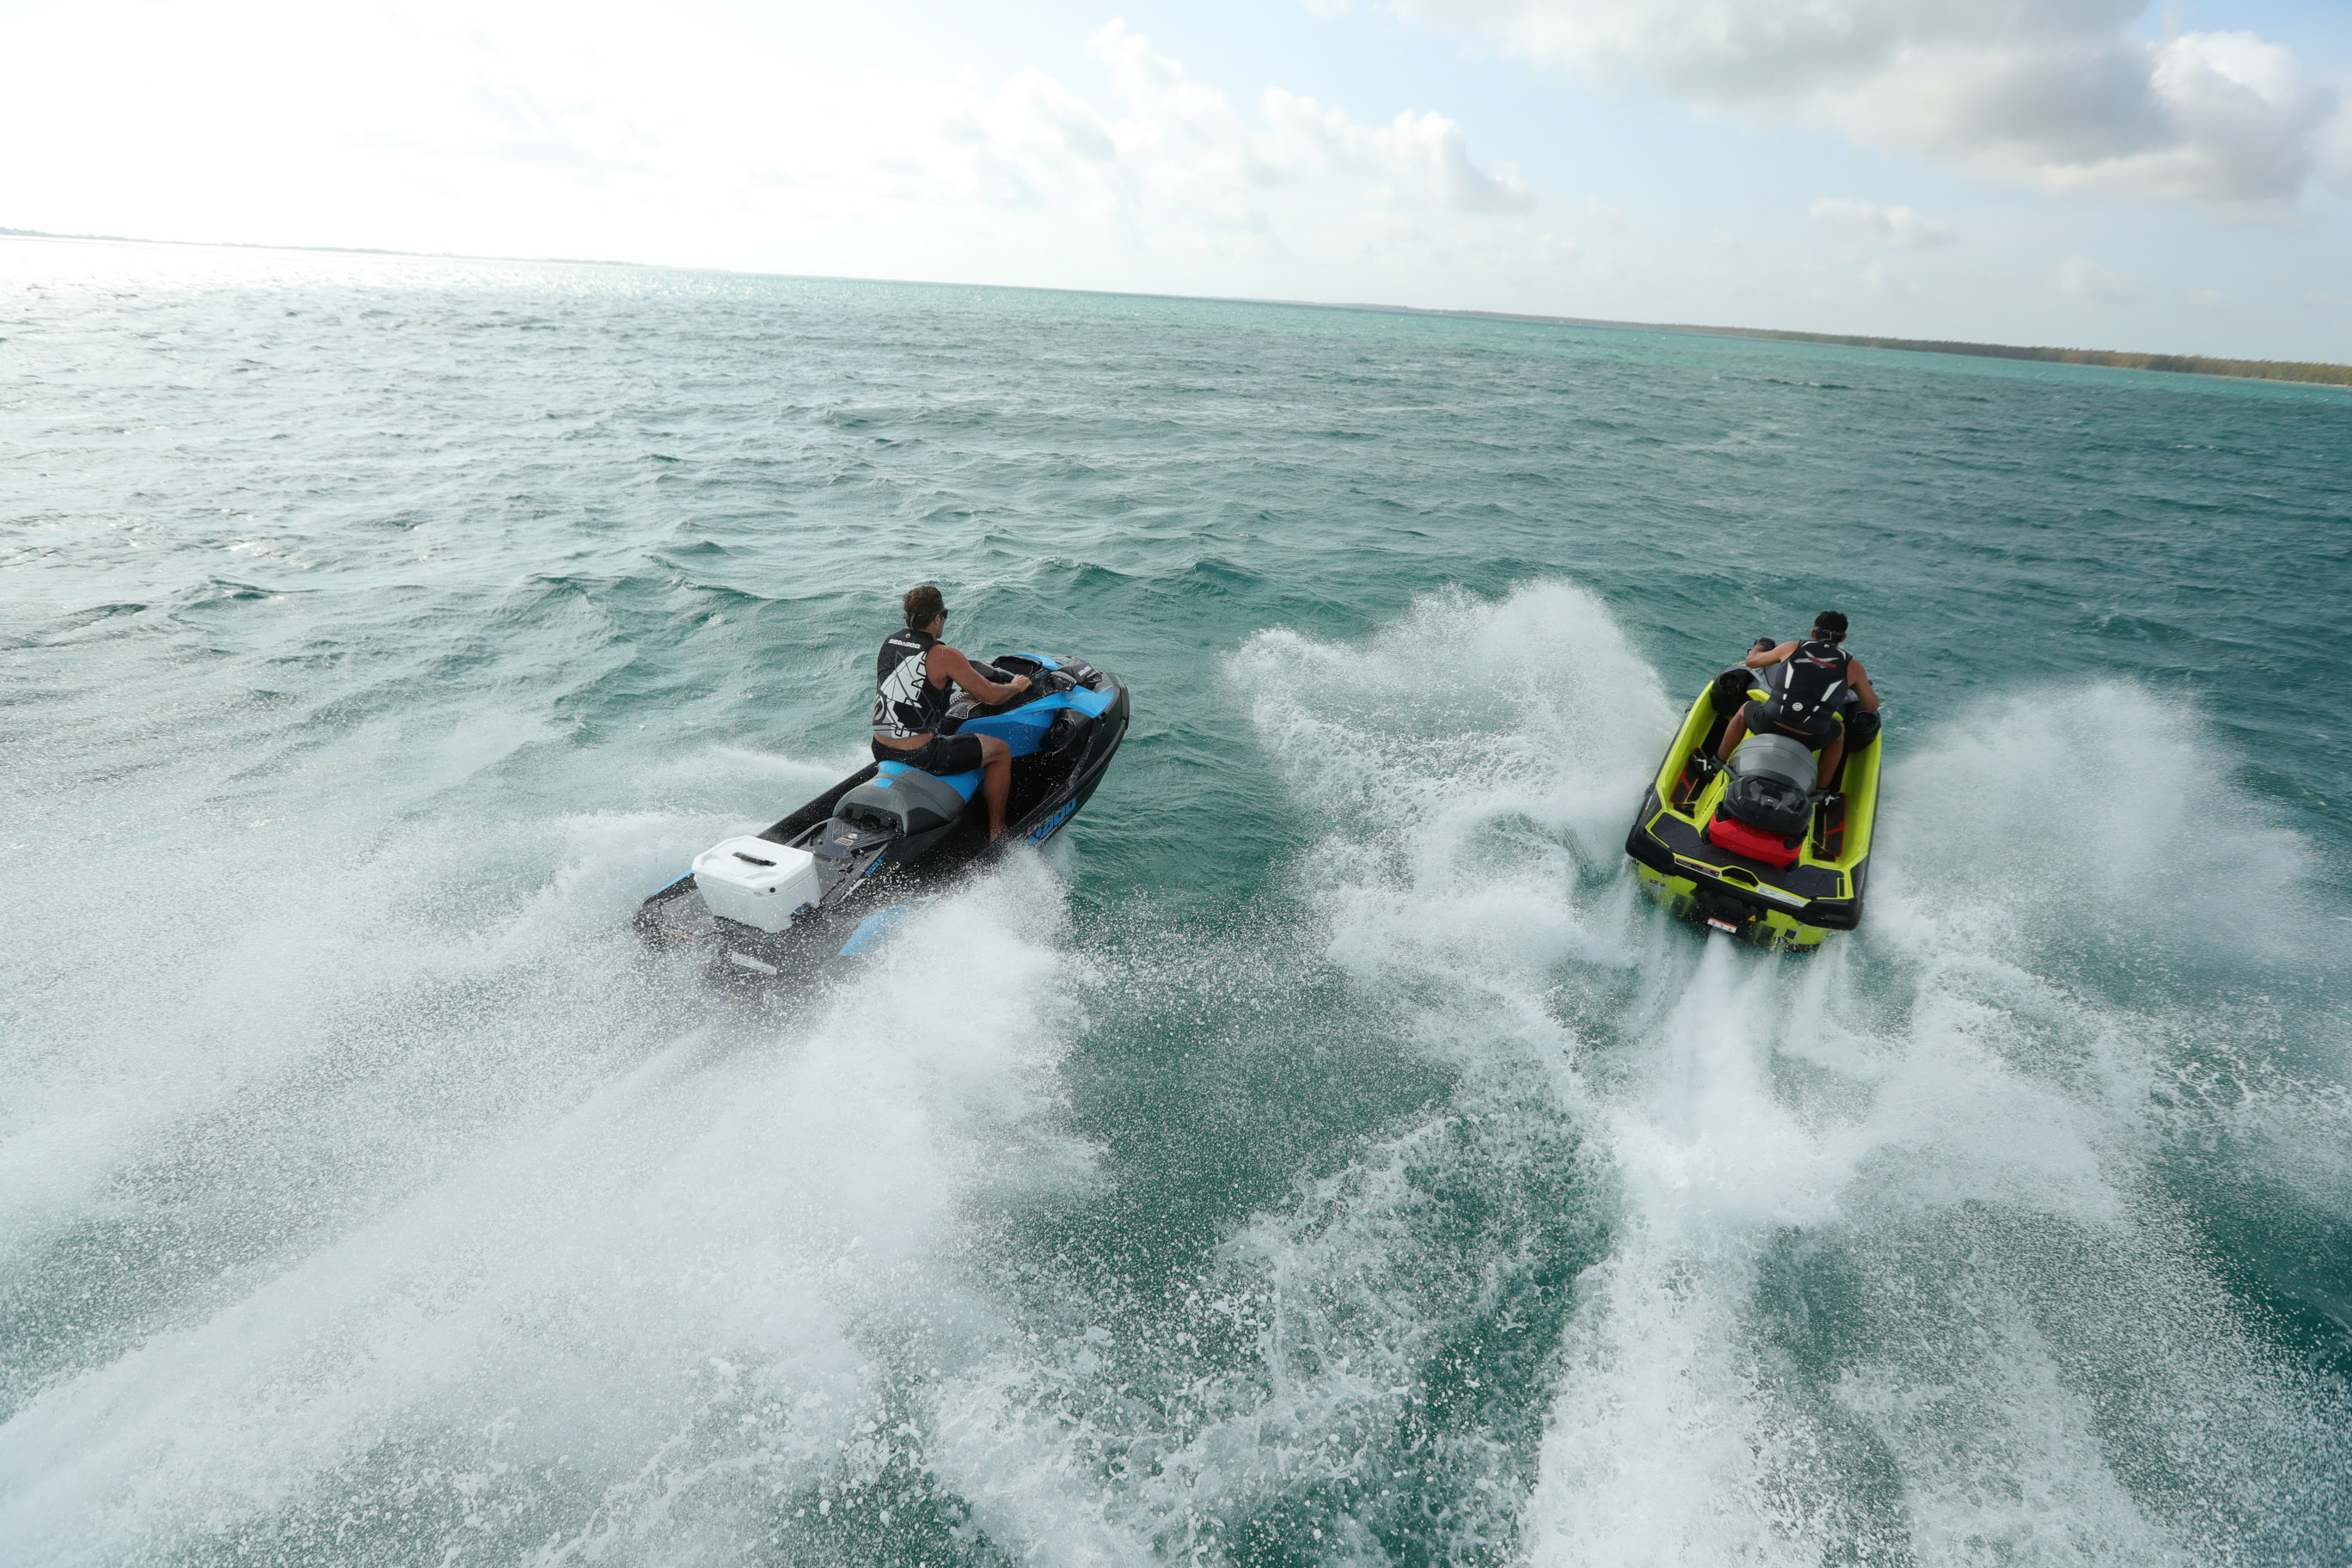 Two riders testing ST3 Hull on rough water